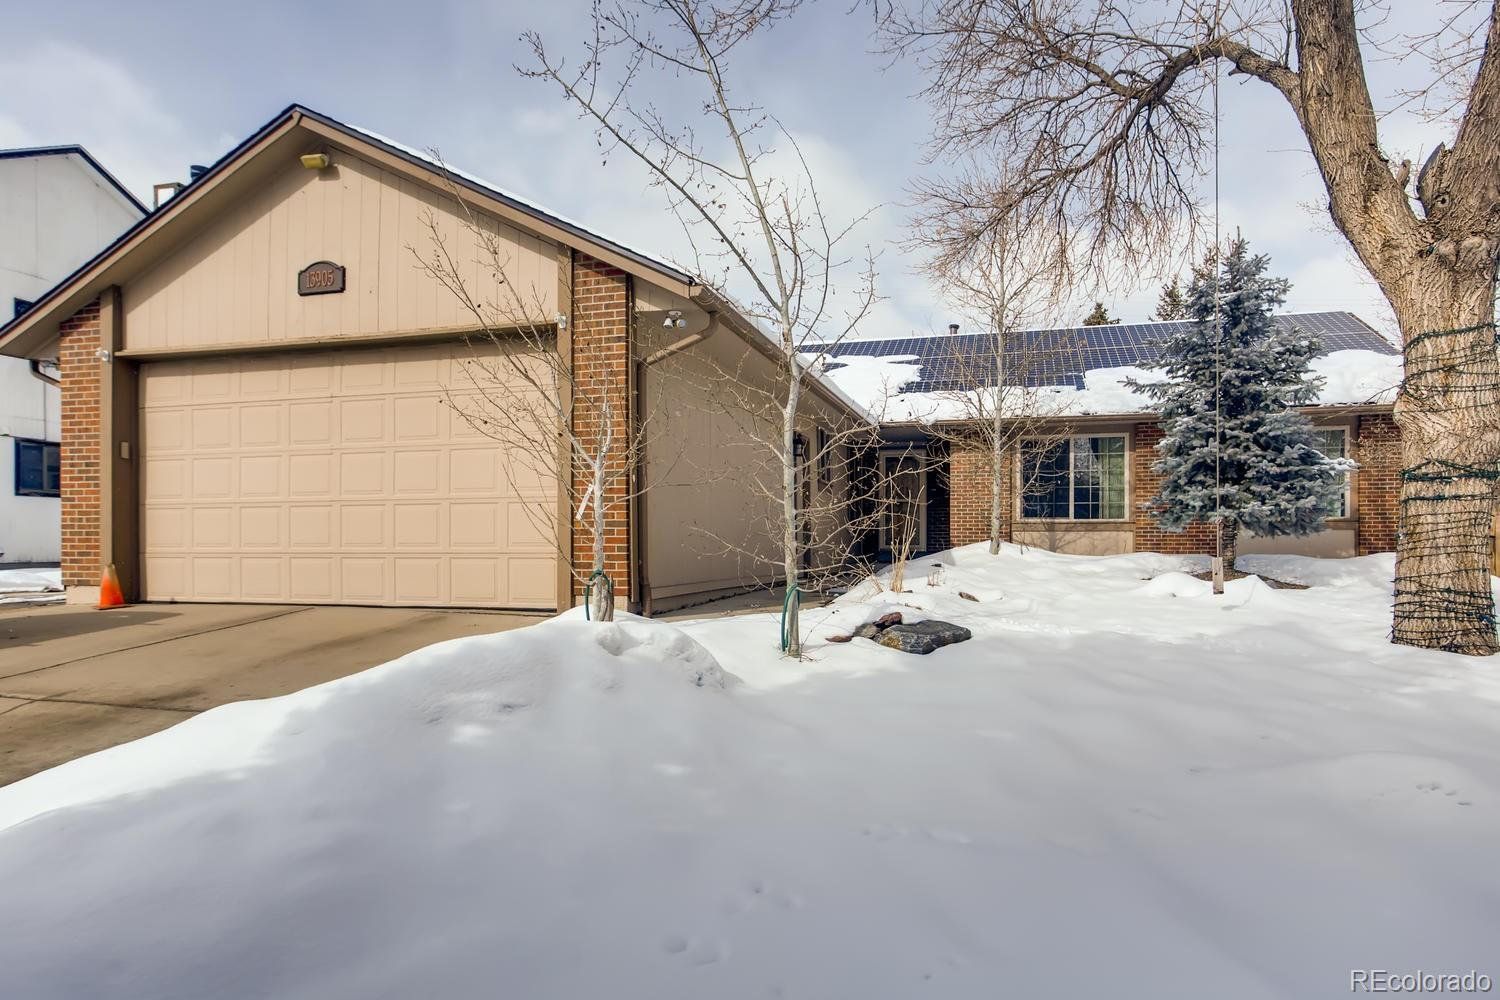 MLS# 4853831 - 1 - 13905 W 6th Place, Golden, CO 80401